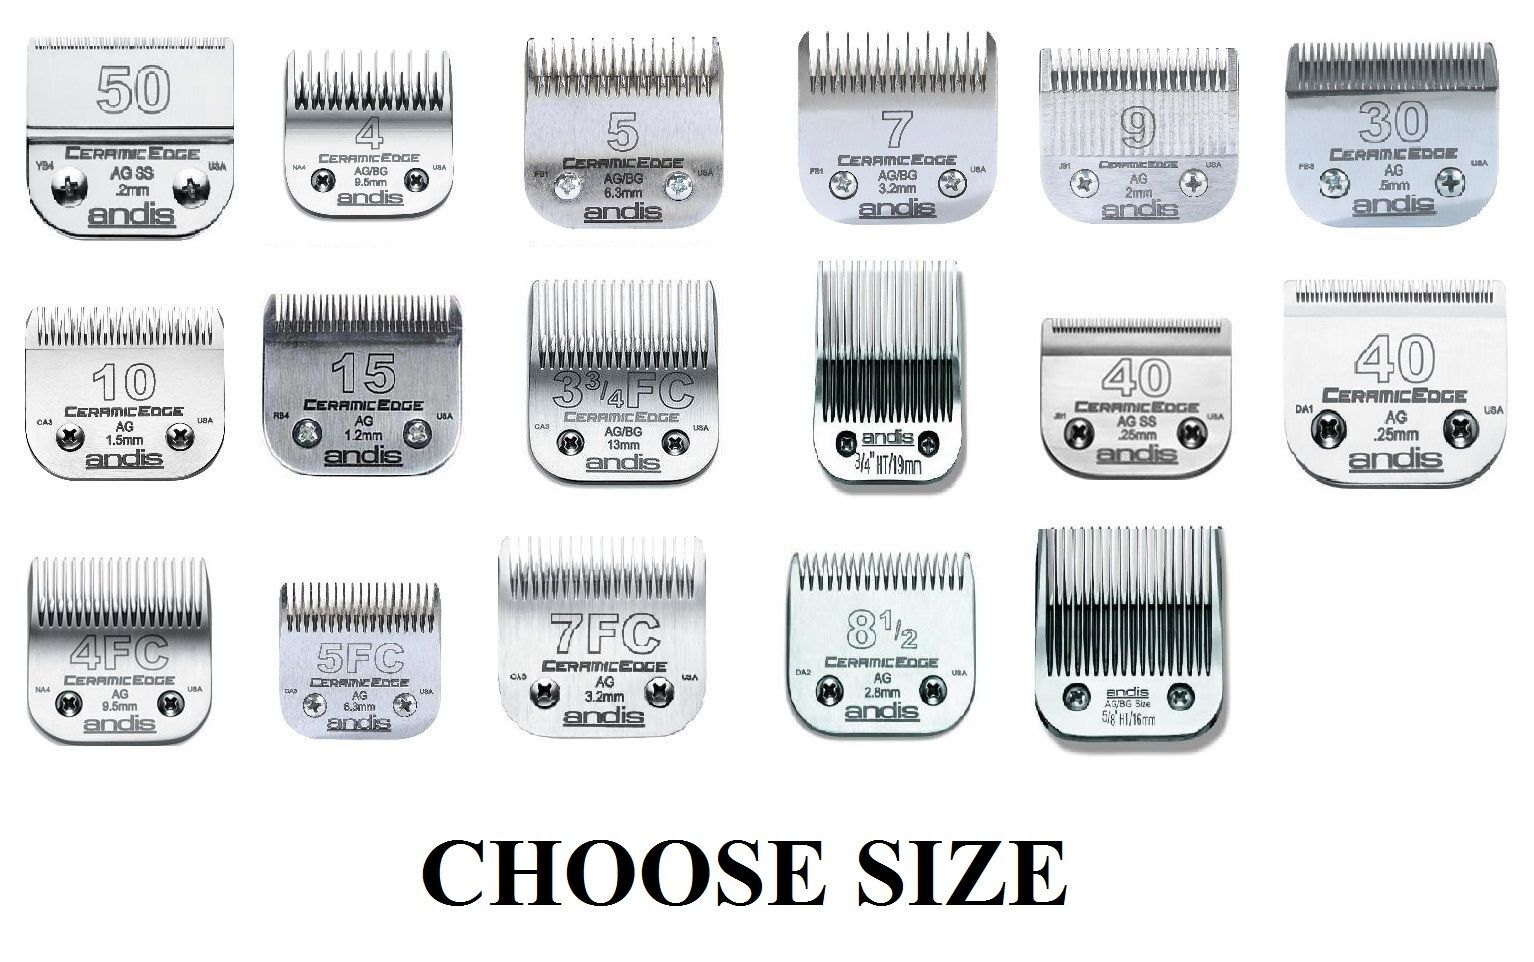 Stainless Steel Pro Quality Grooming CERAMIC EDGE CLIPPER BLADES CHOOSE Dimensione